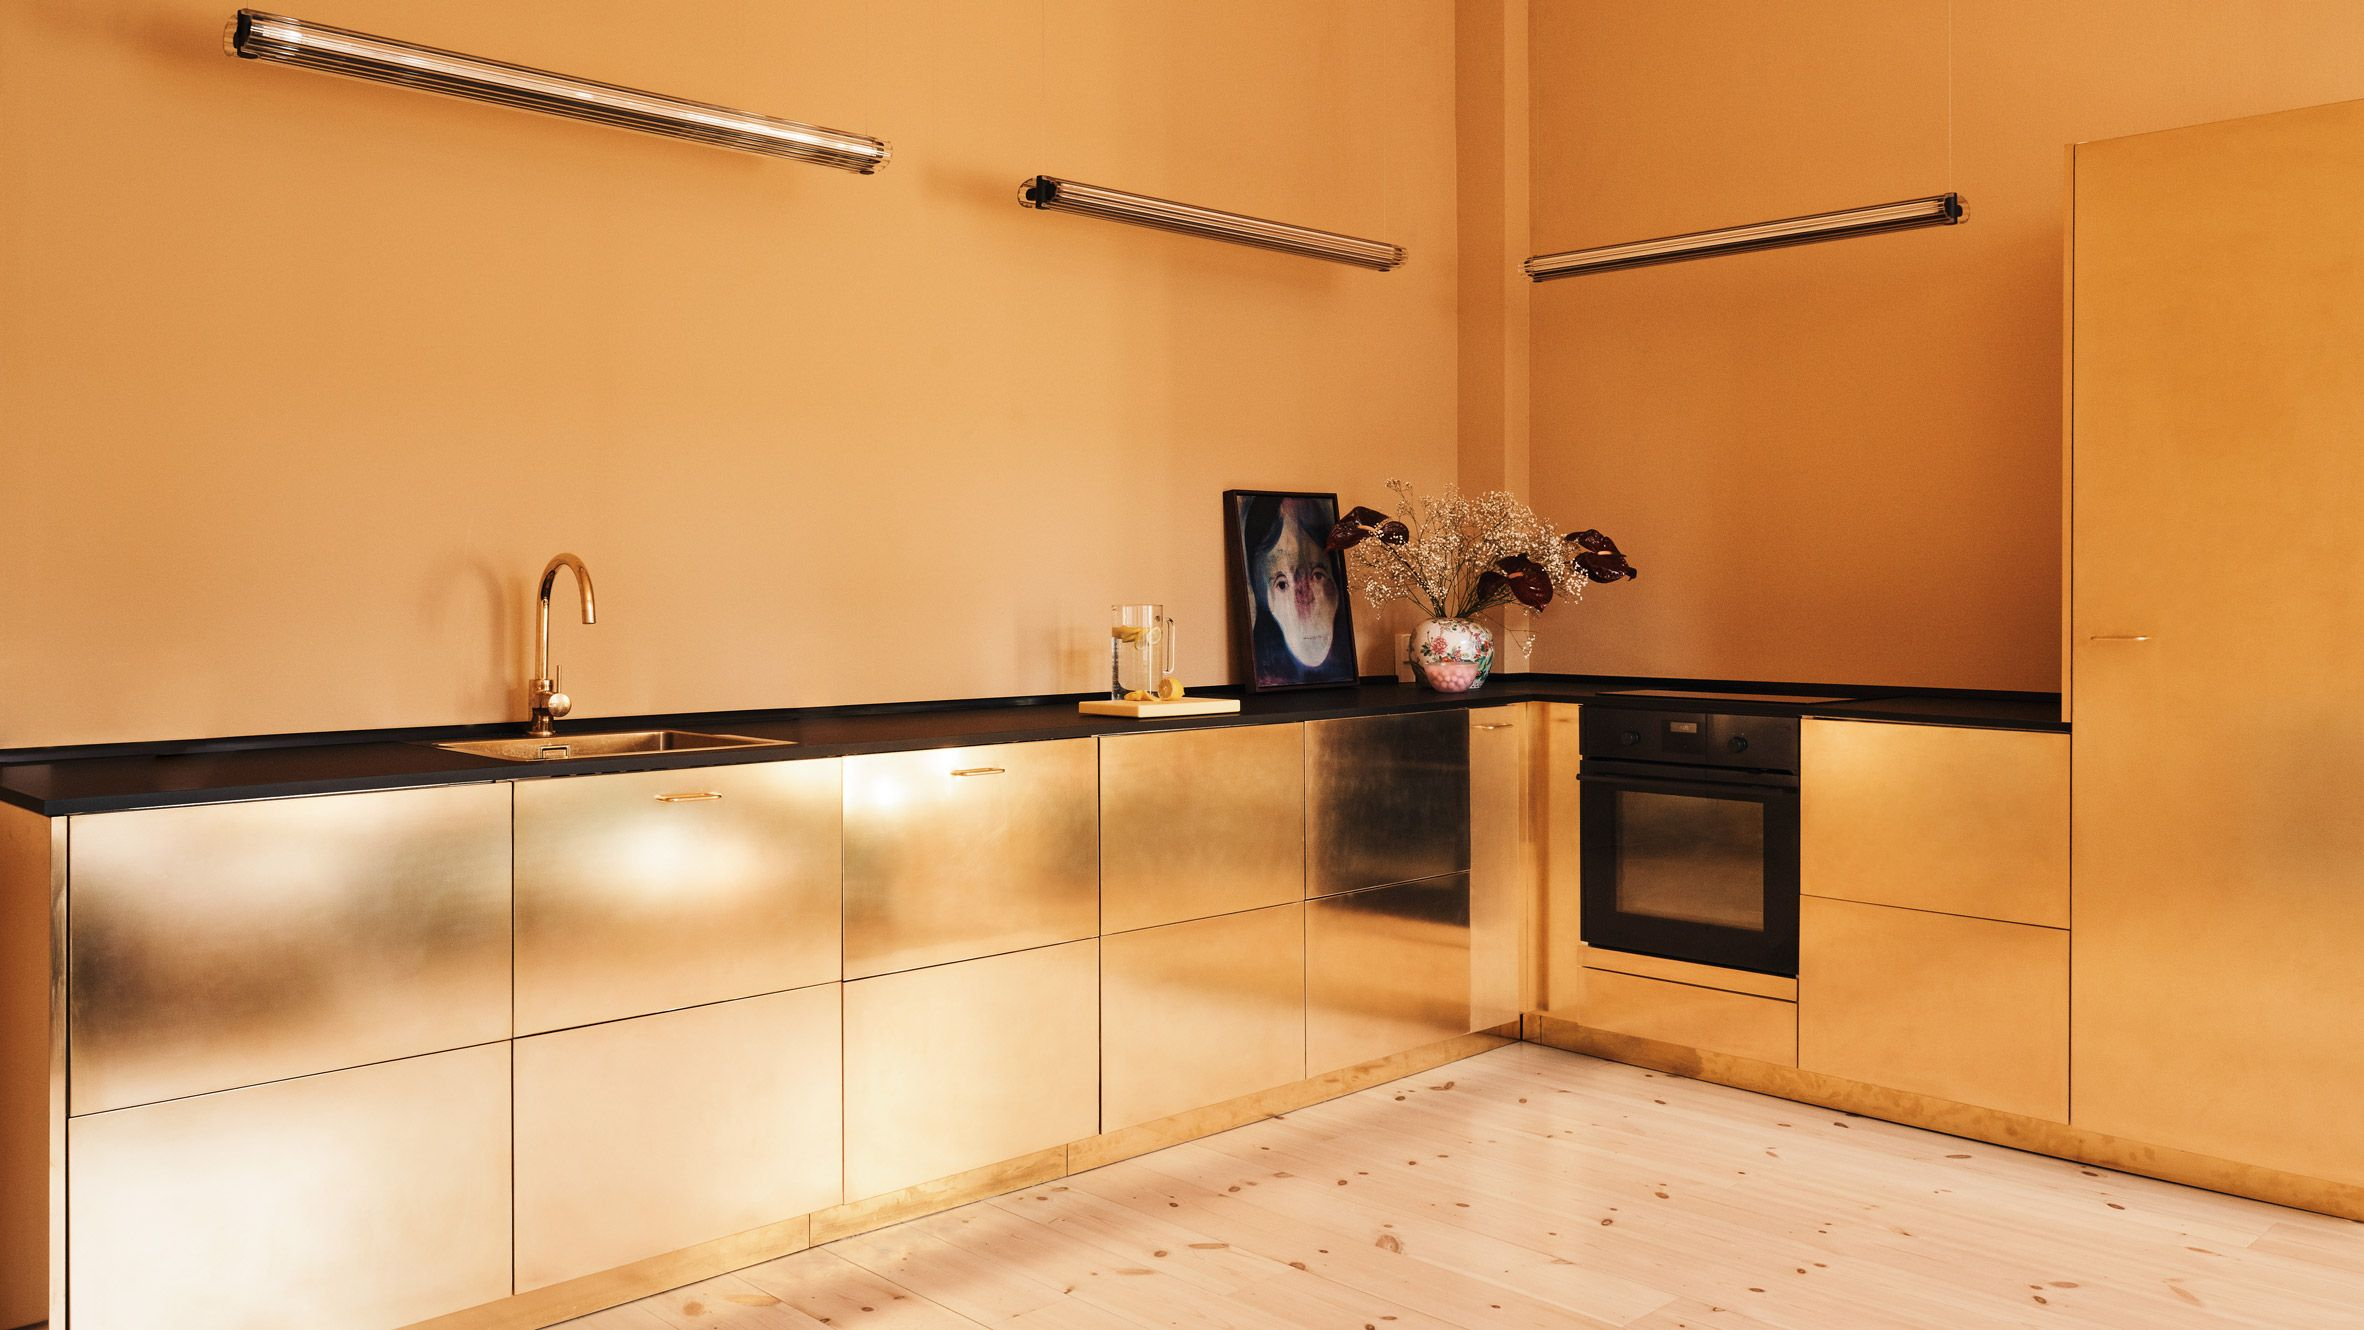 Reform Hacks Ikea Cabinets To Create Gold Hued Kitchen For Danish Fashion Brand Deko Tisch Gold Kuche Ikea Kuchenideen